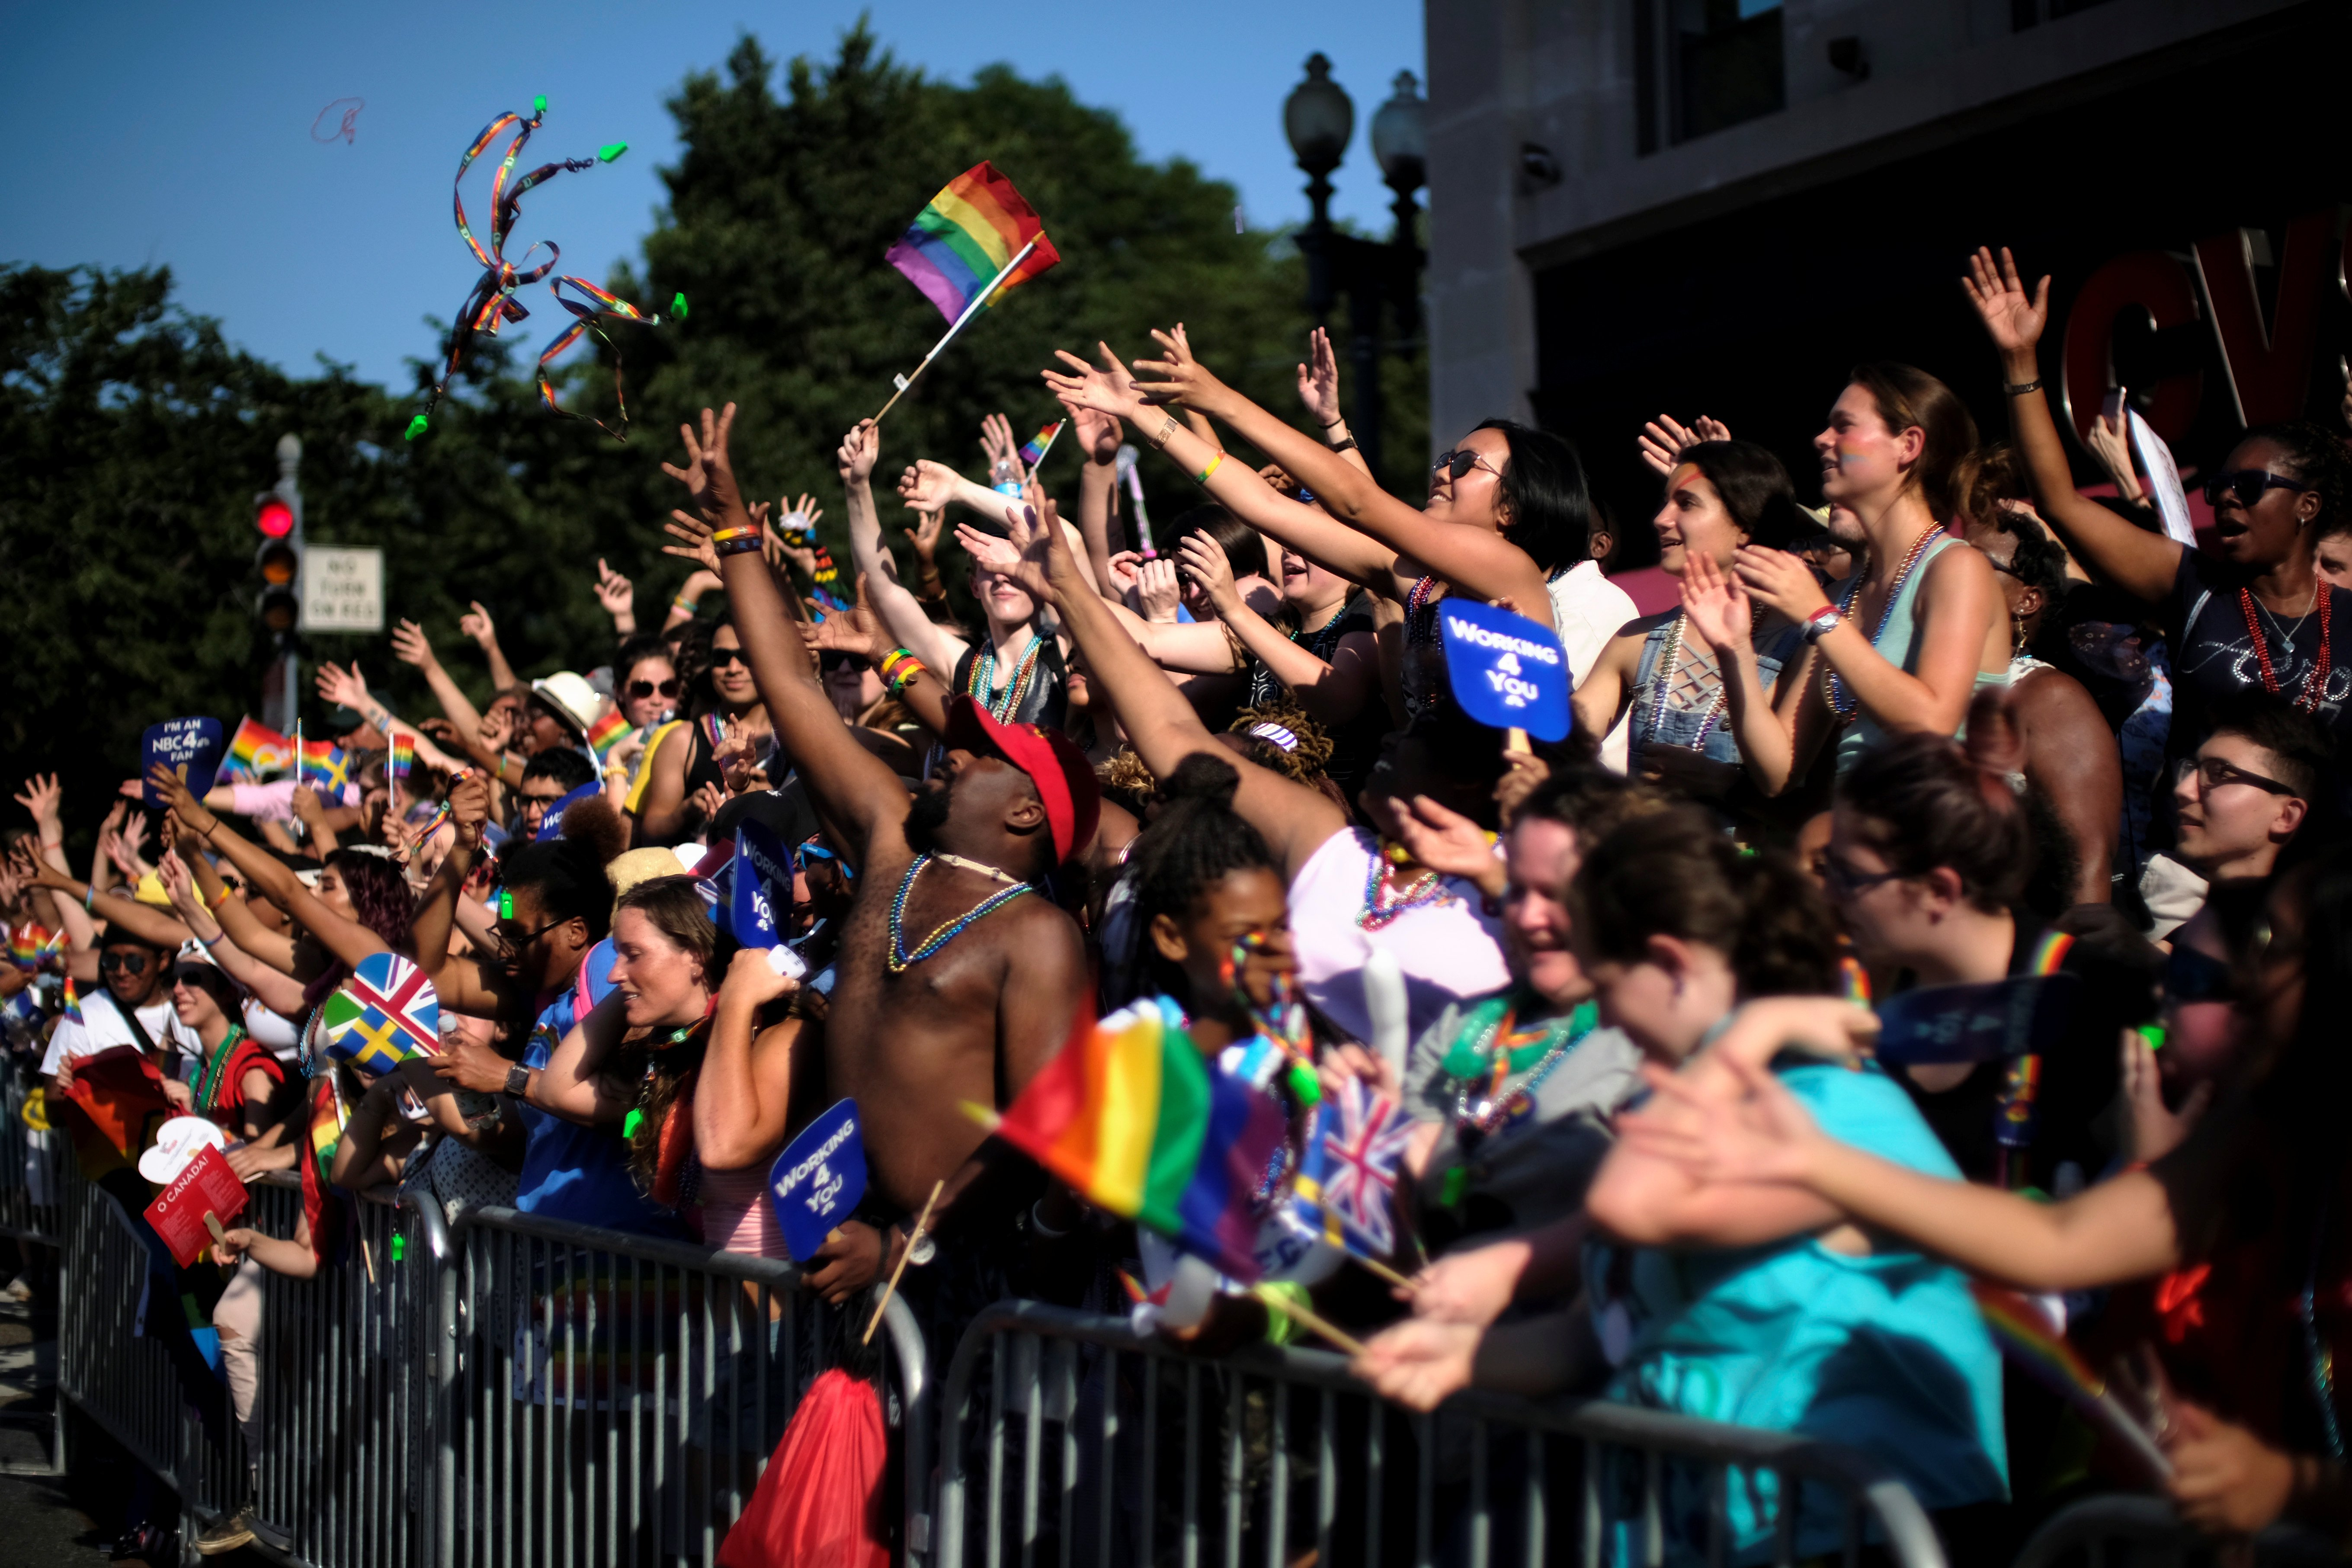 Thousands celebrate the annual LGBTQ Capital Pride parade in Washington June 10, 2017. REUTERS/James Lawler Duggan